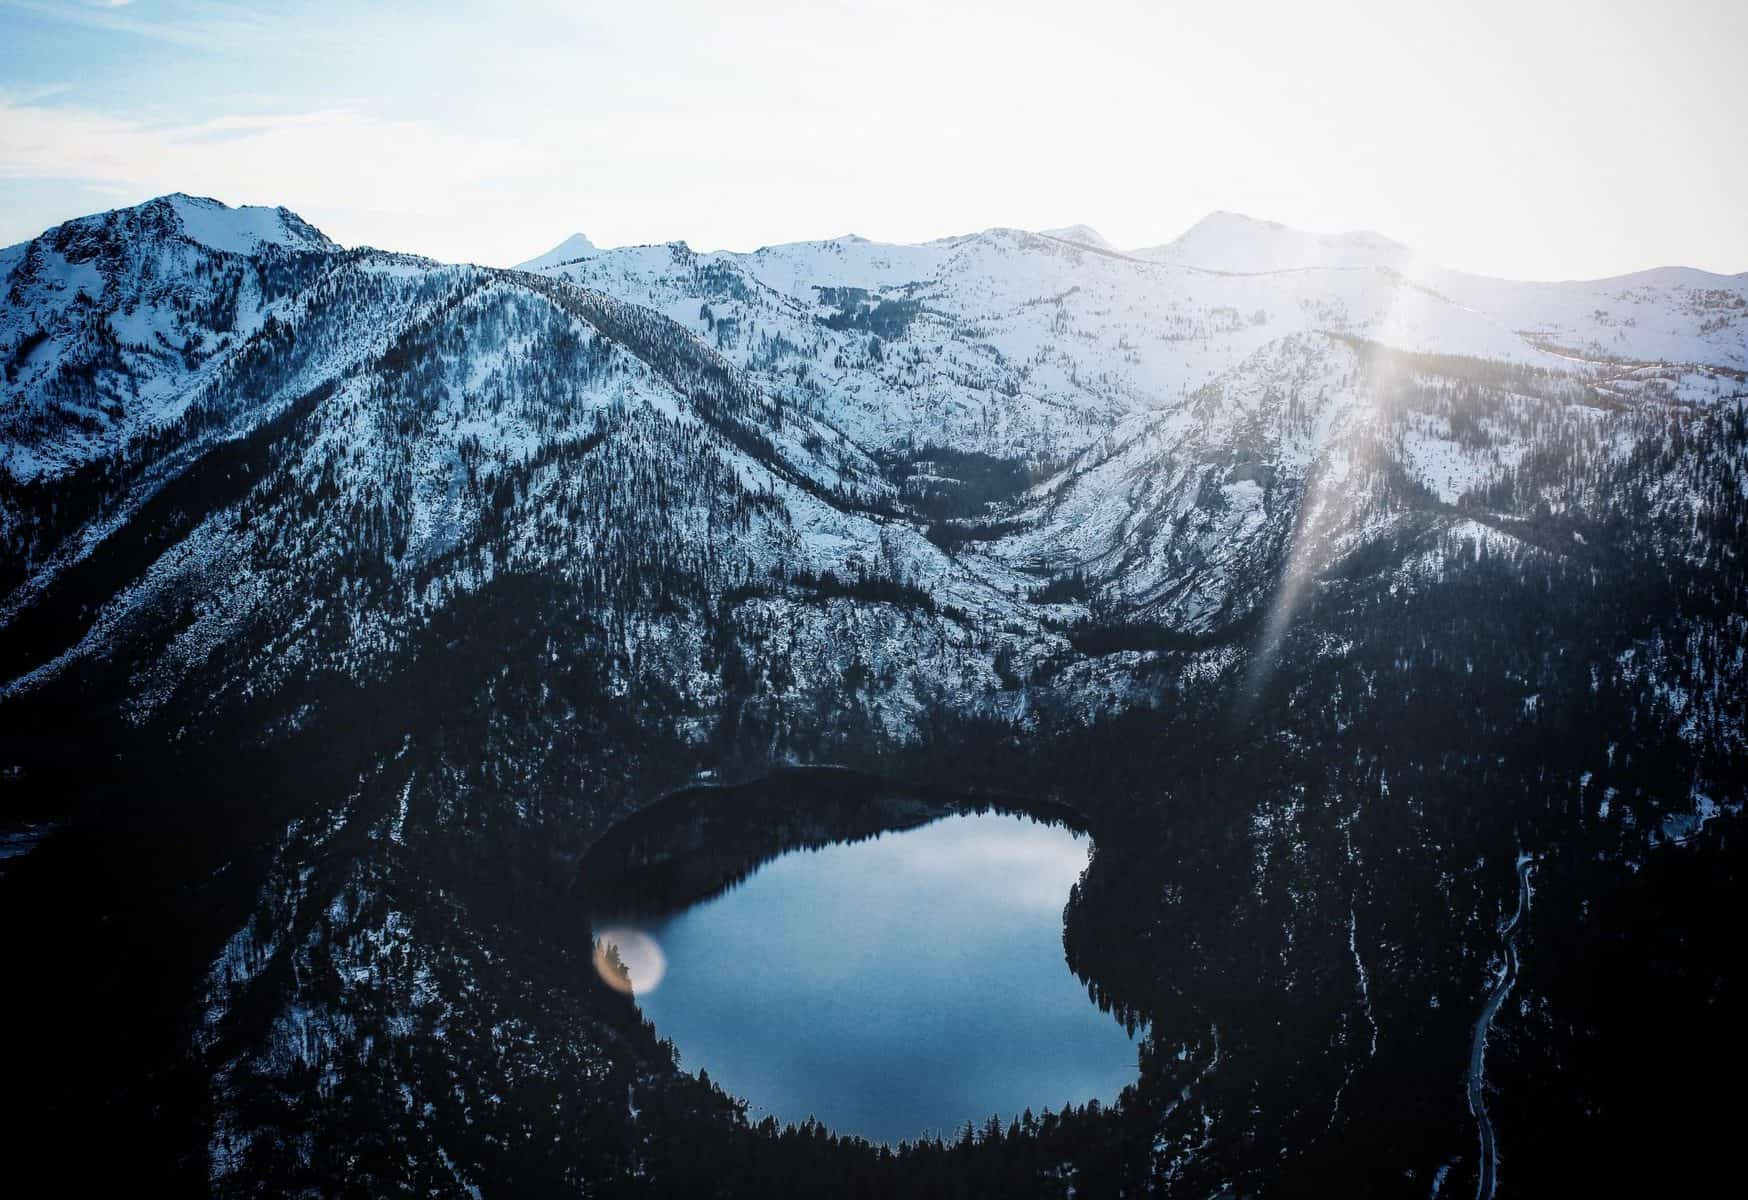 lake between mountains in winter